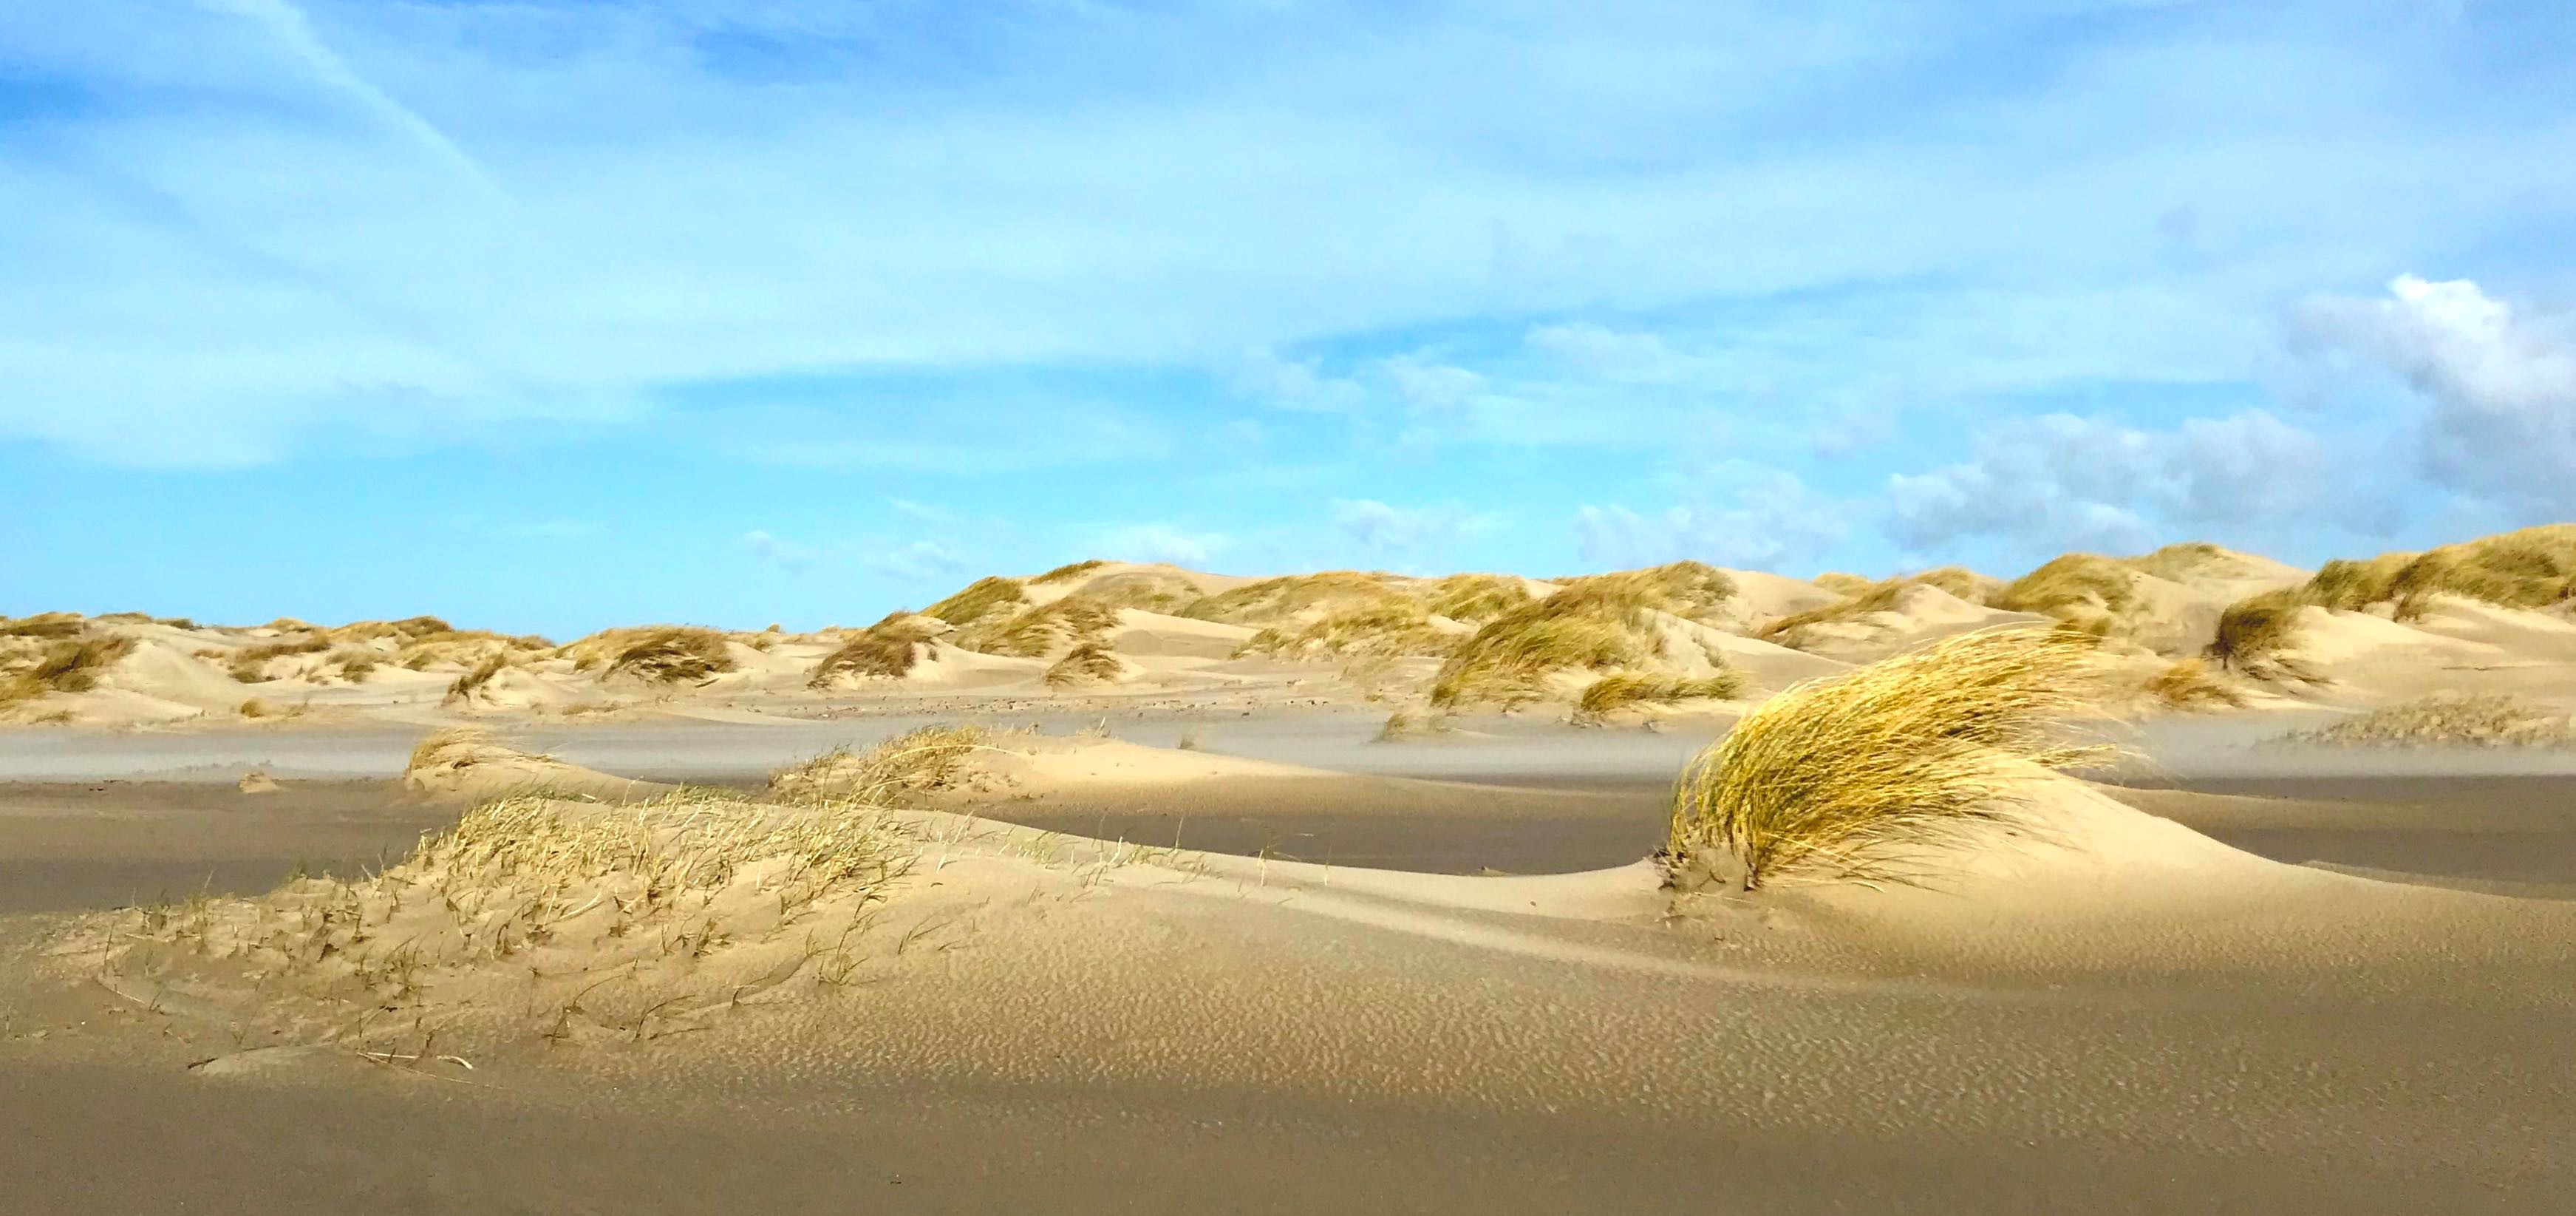 Sand couch (left) uses dispersed growth patterns to build low, wide dunes. Marram grass (right) catches more sand immediately around it, resulting in a higher dune. Location: De Hors, Texel. Credits: Valérie Reijers